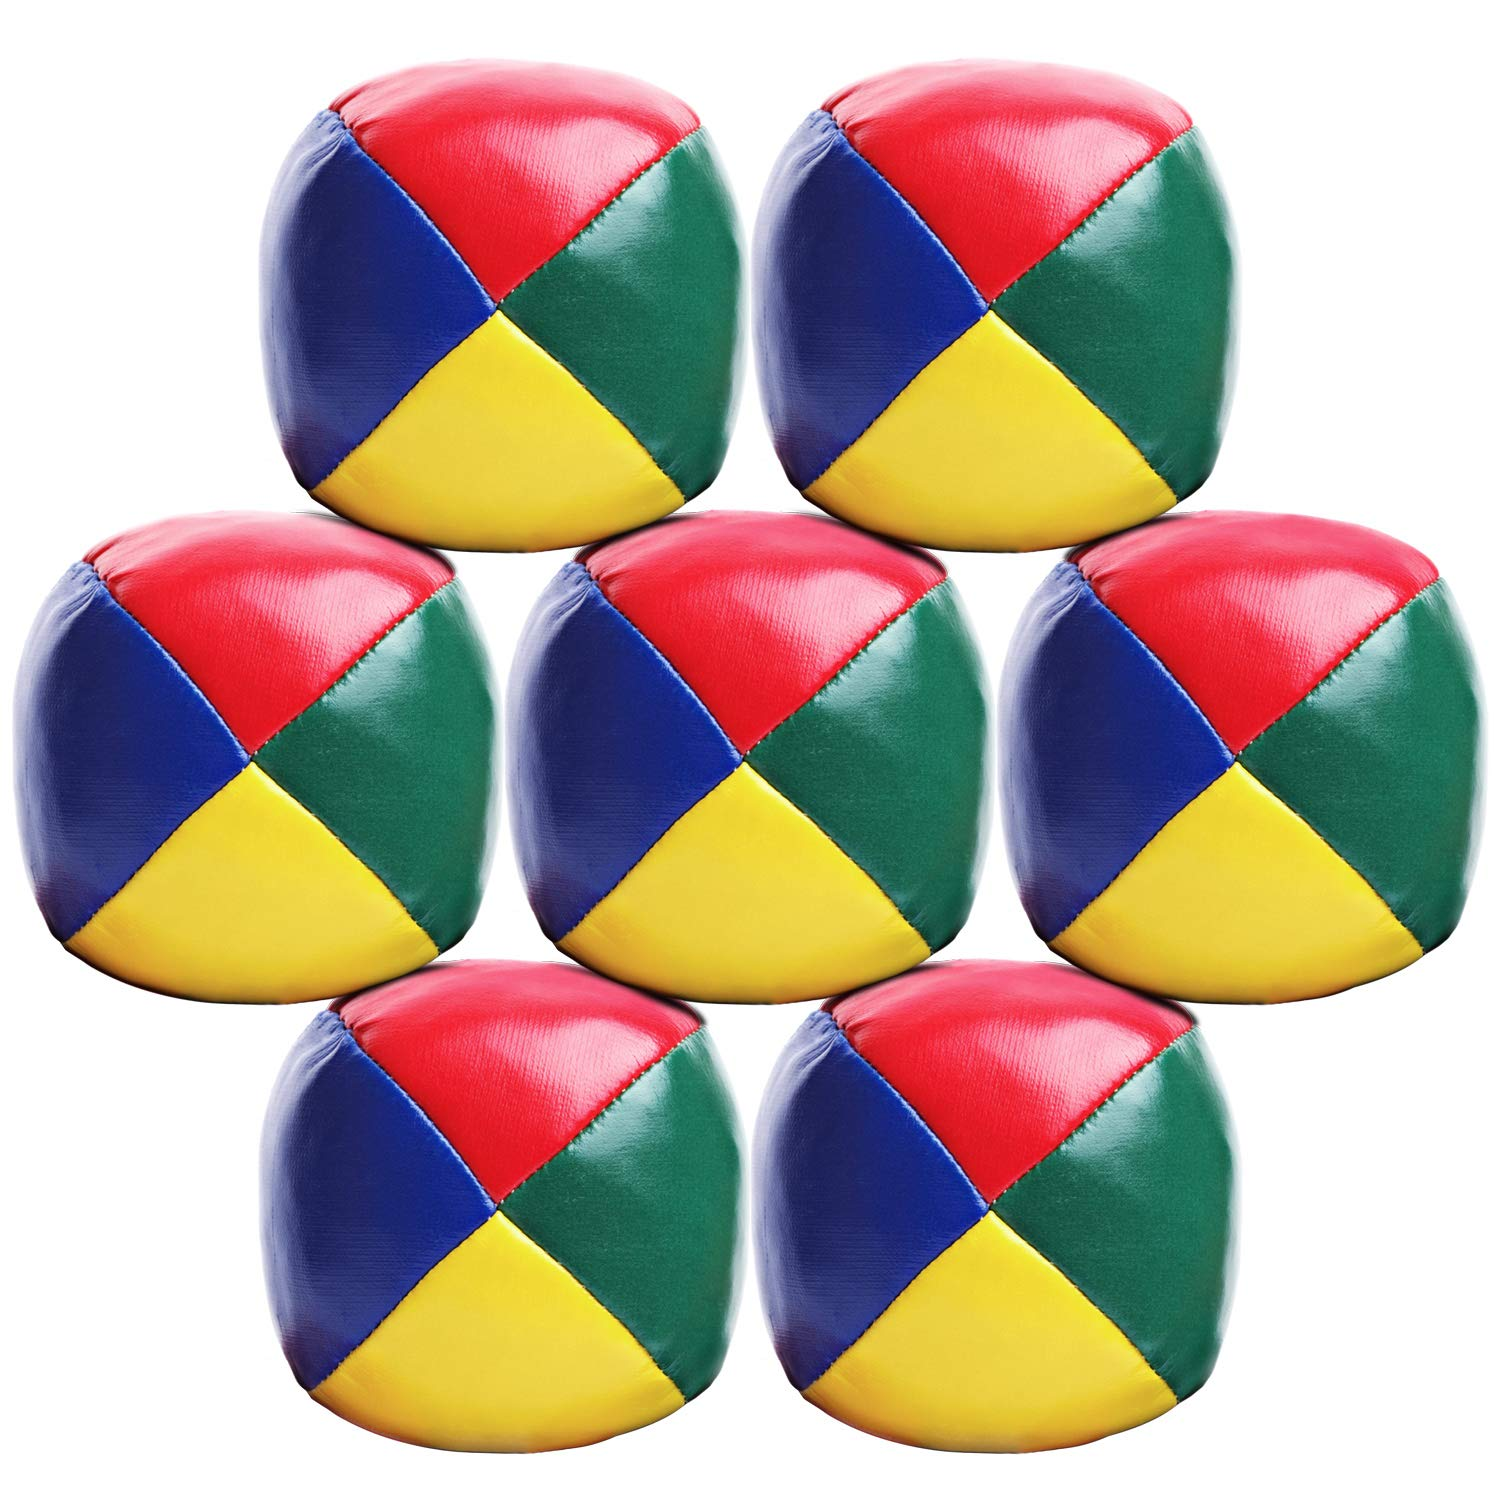 Elcoho 7 Pack Beginners Juggling Balls Durable and Soft Easy Juggle Balls